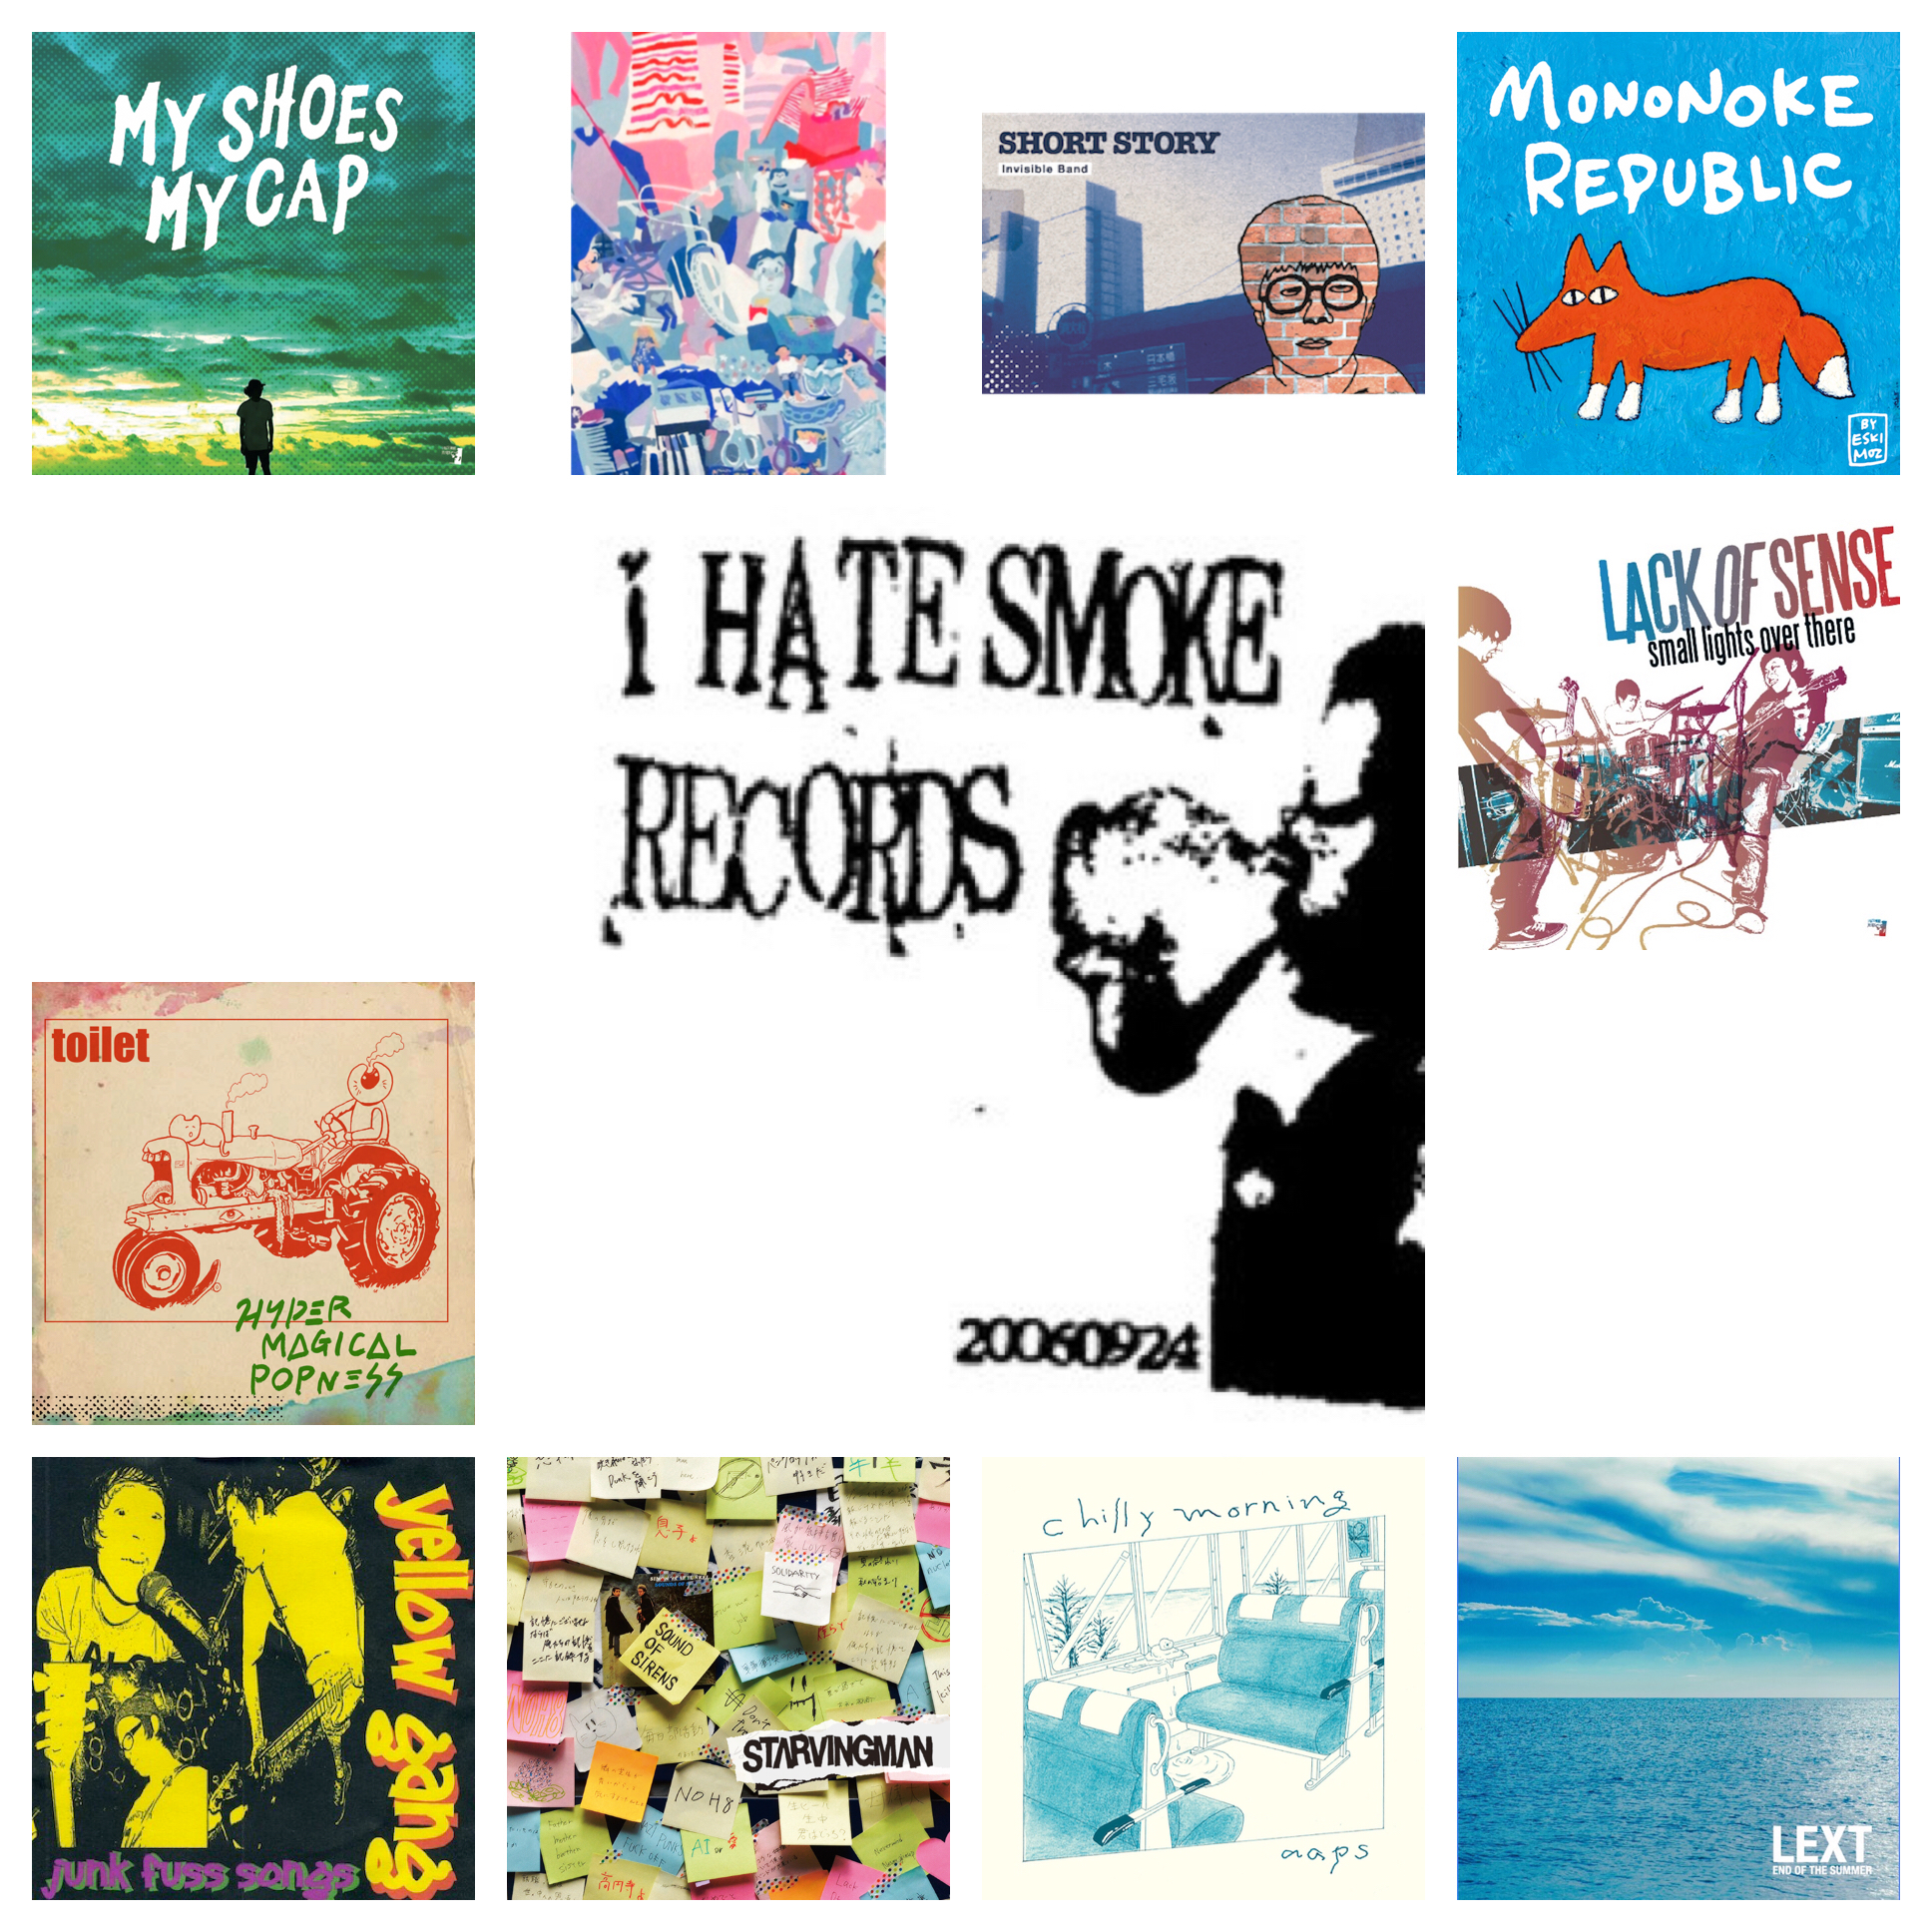 I Hate Smoke Records Sampler